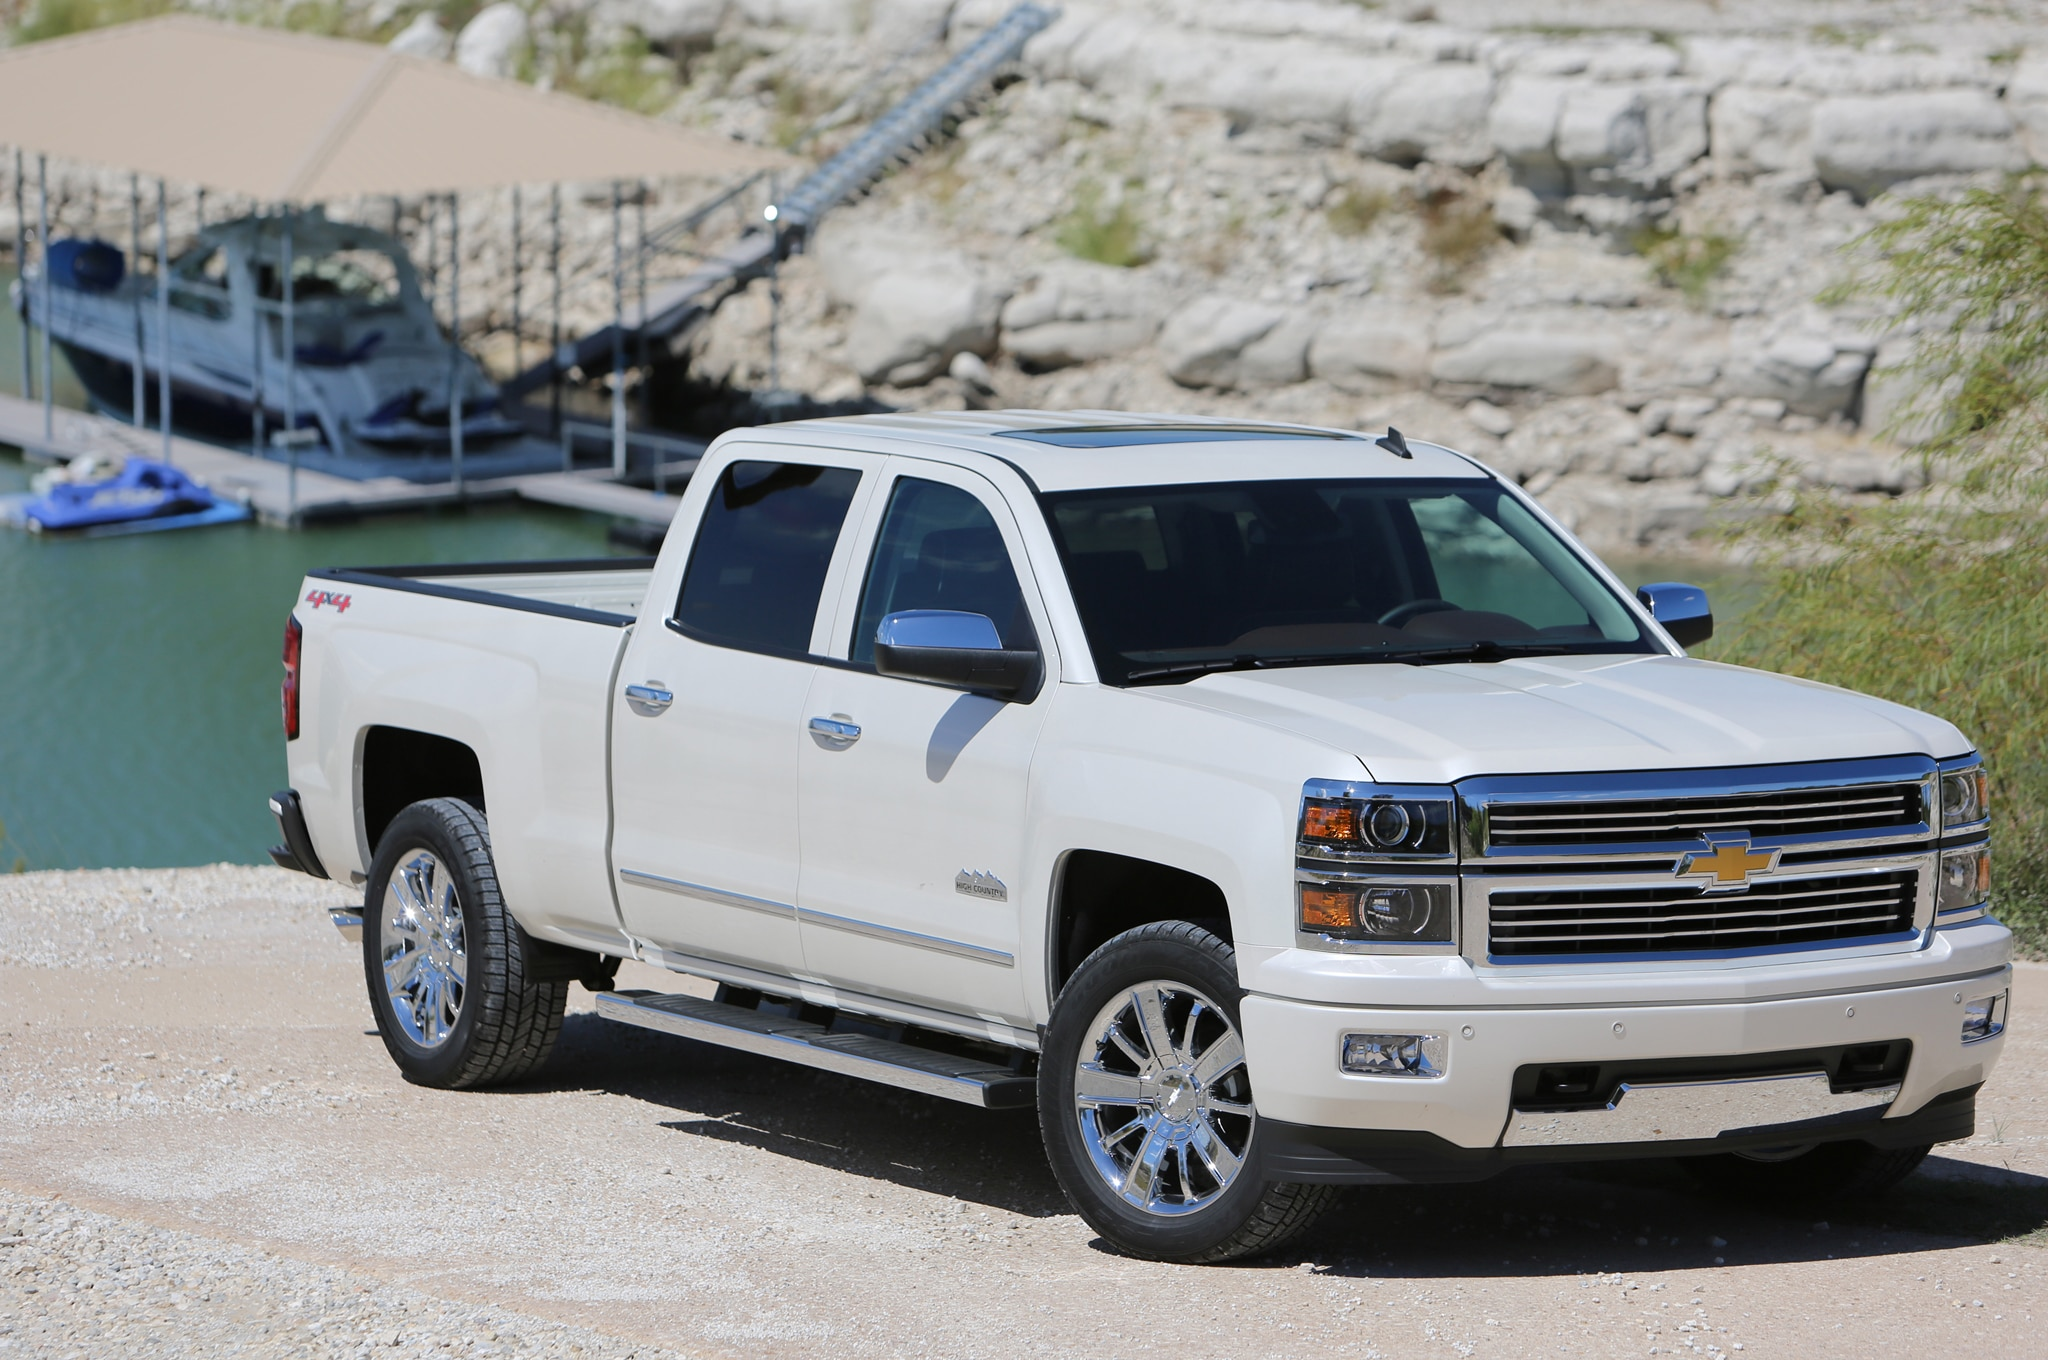 303 000 2014 chevrolet silverado and gmc sierra pickups. Black Bedroom Furniture Sets. Home Design Ideas